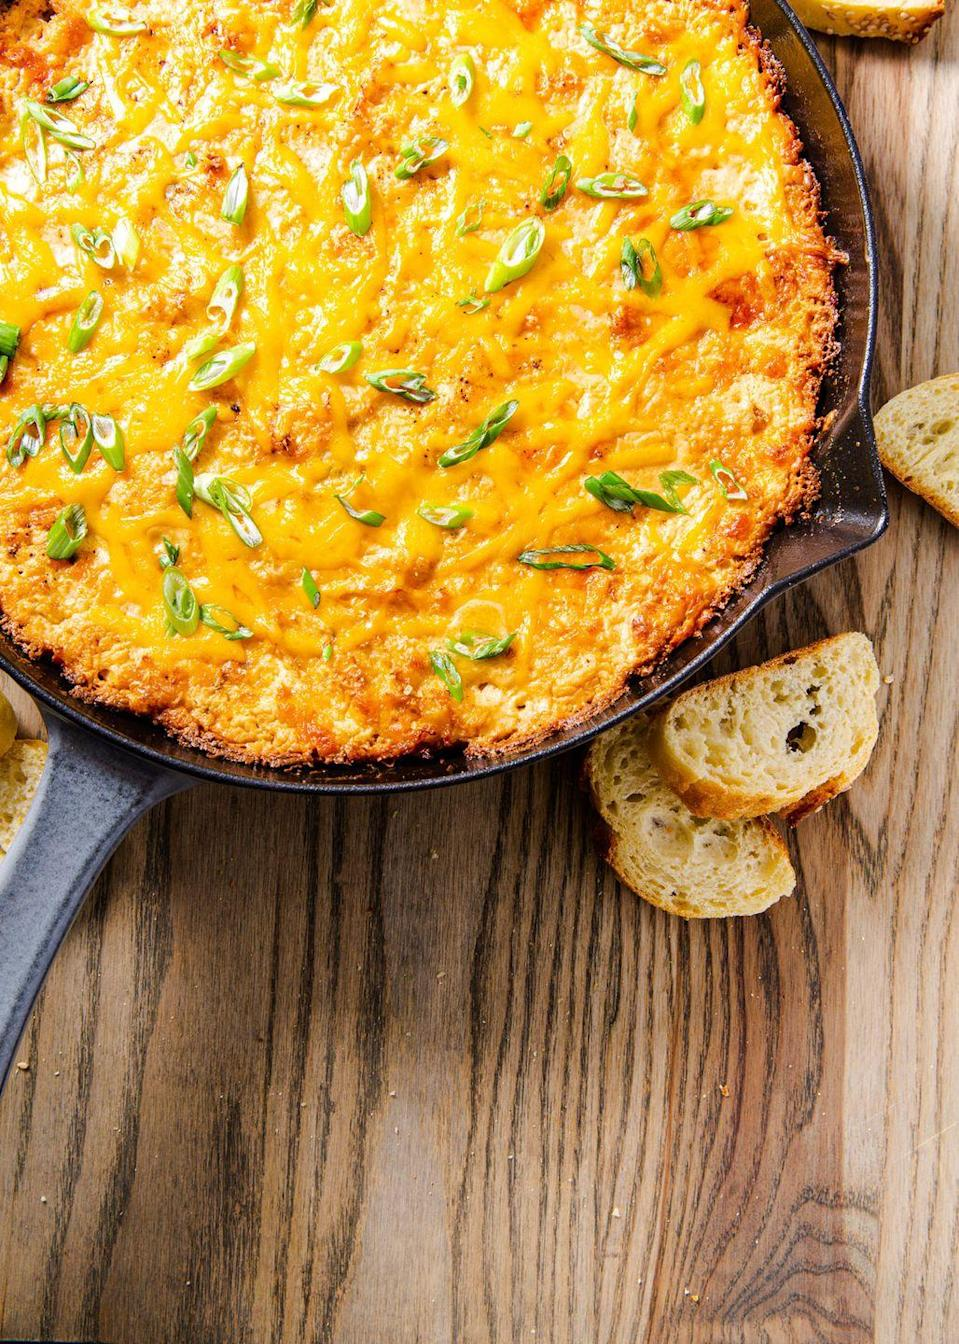 """<p>Cheese pulls for daysssss.</p><p>Get the recipe from <a href=""""https://www.delish.com/cooking/recipe-ideas/a30195933/easy-hot-crab-dip-recipe/"""" rel=""""nofollow noopener"""" target=""""_blank"""" data-ylk=""""slk:Delish"""" class=""""link rapid-noclick-resp"""">Delish</a>.</p>"""